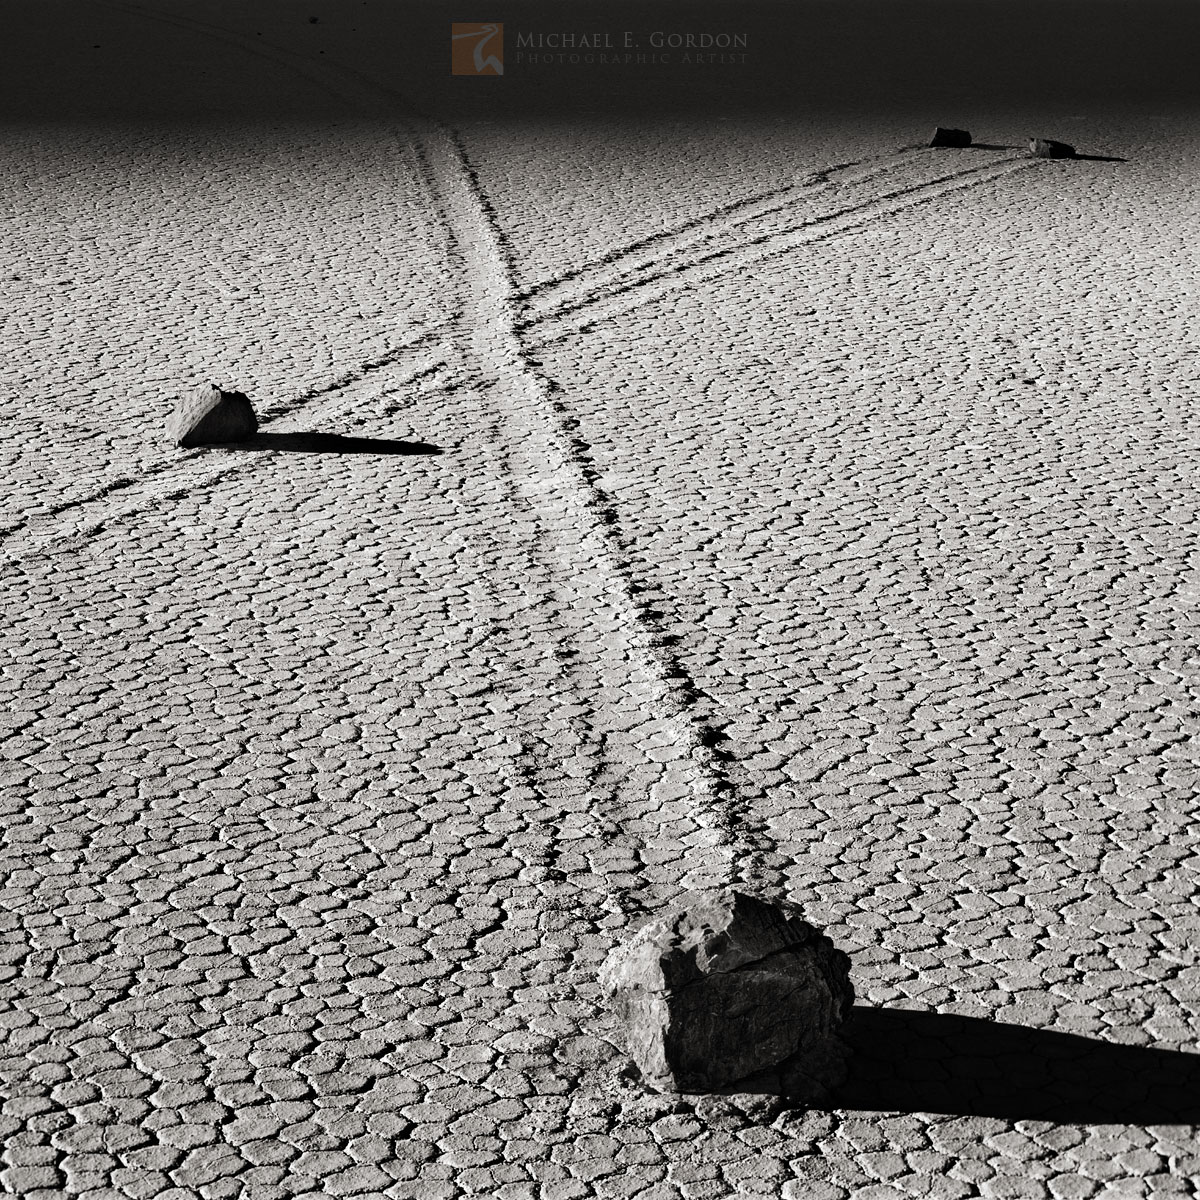 shadows, mysterious, unique, calligraphic, tracks, sliding, stones, The Racetrack, Death Valley, California, edge, darkness, , photo